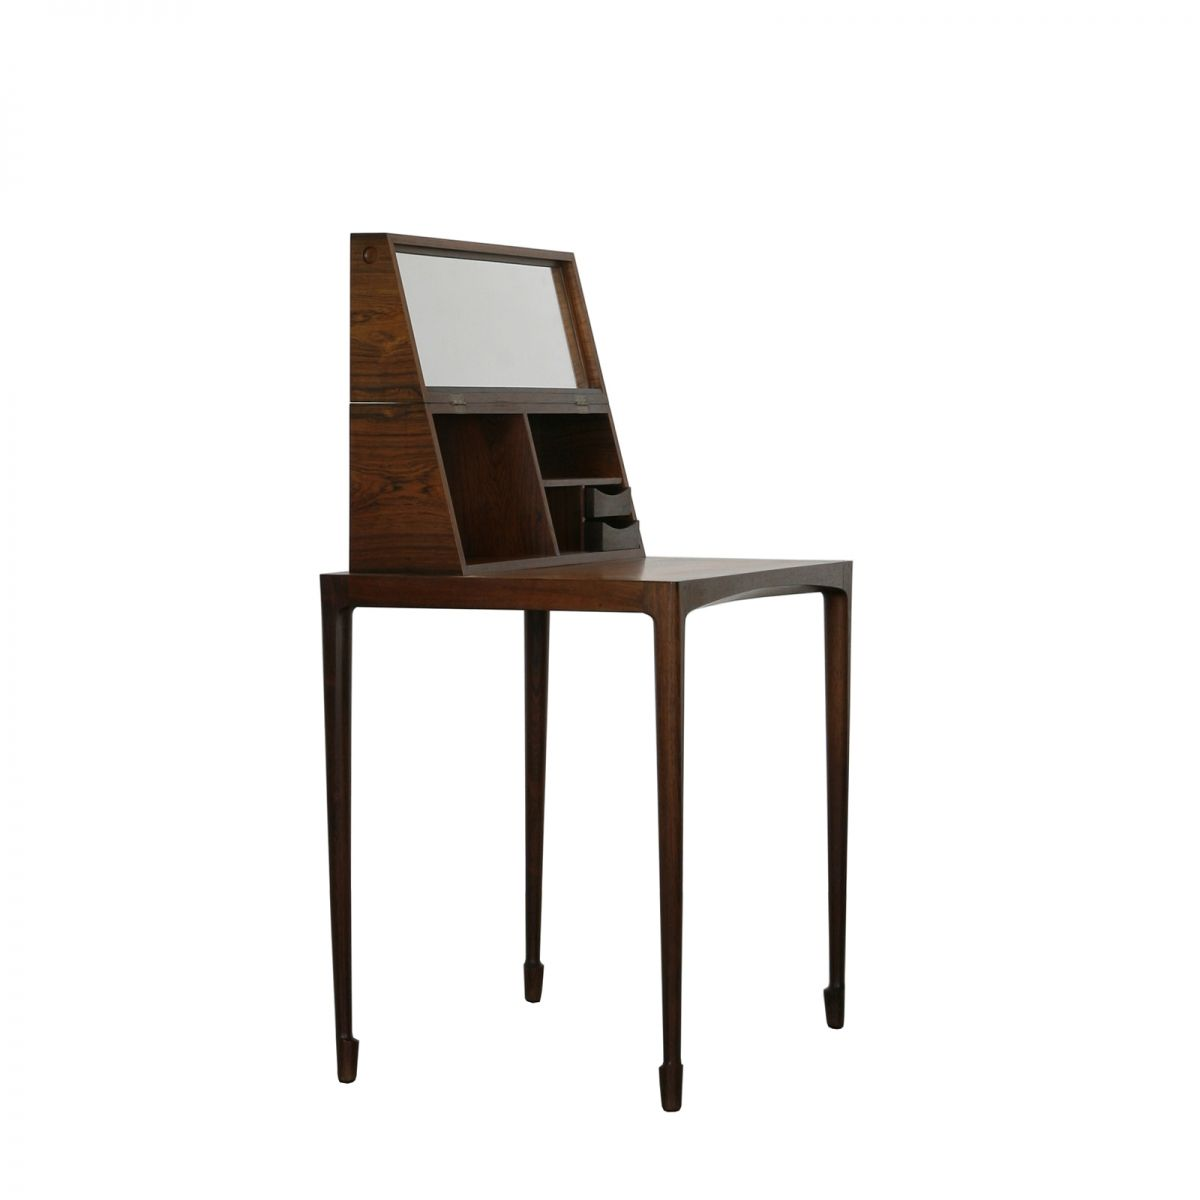 Bernt Vanity Table And Stool - Only 22,000 Euro - Cheap Compared To The Desk